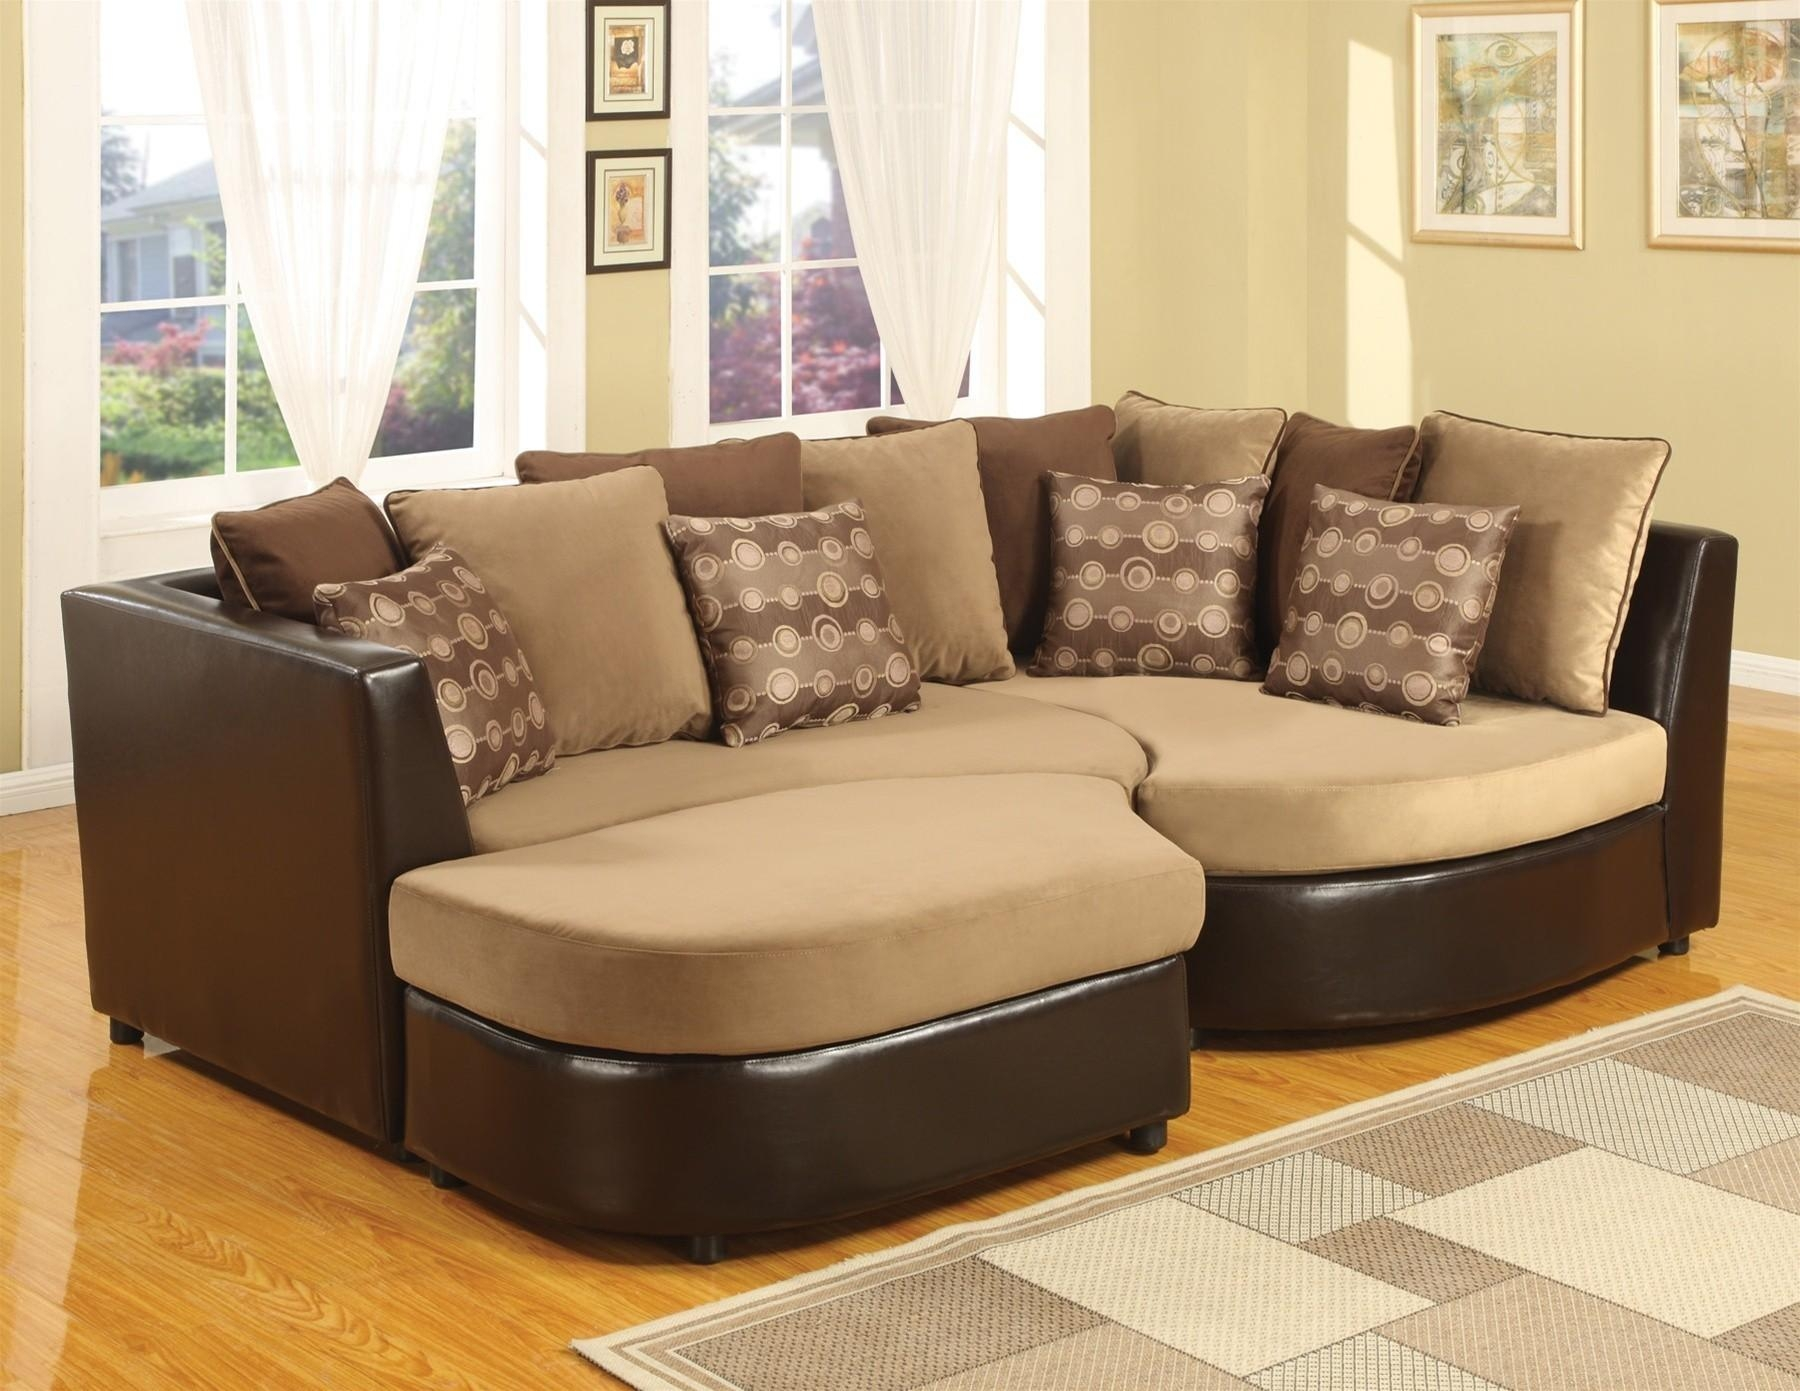 Round Couches Ikea Sectional Sectional Sofas On Sale (Image 15 of 20)